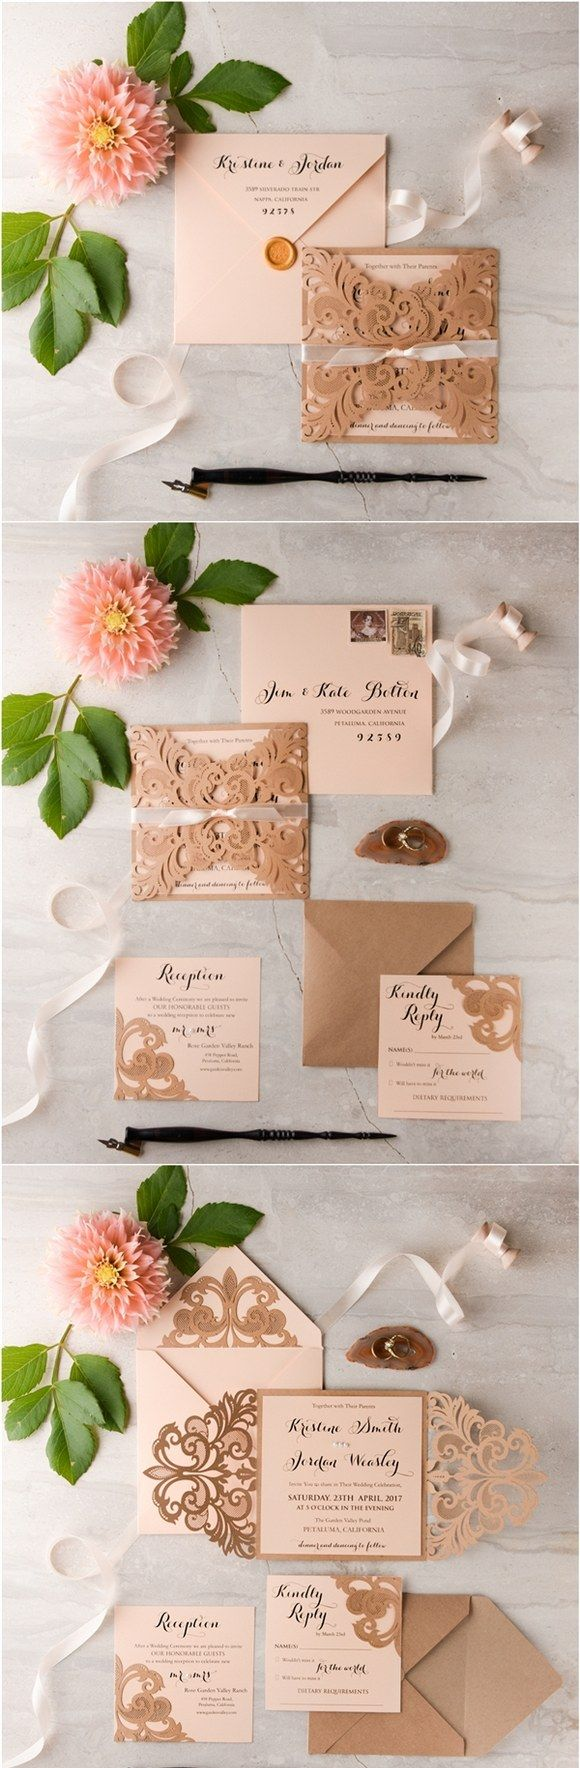 Explore Peach Wedding Invitations And More